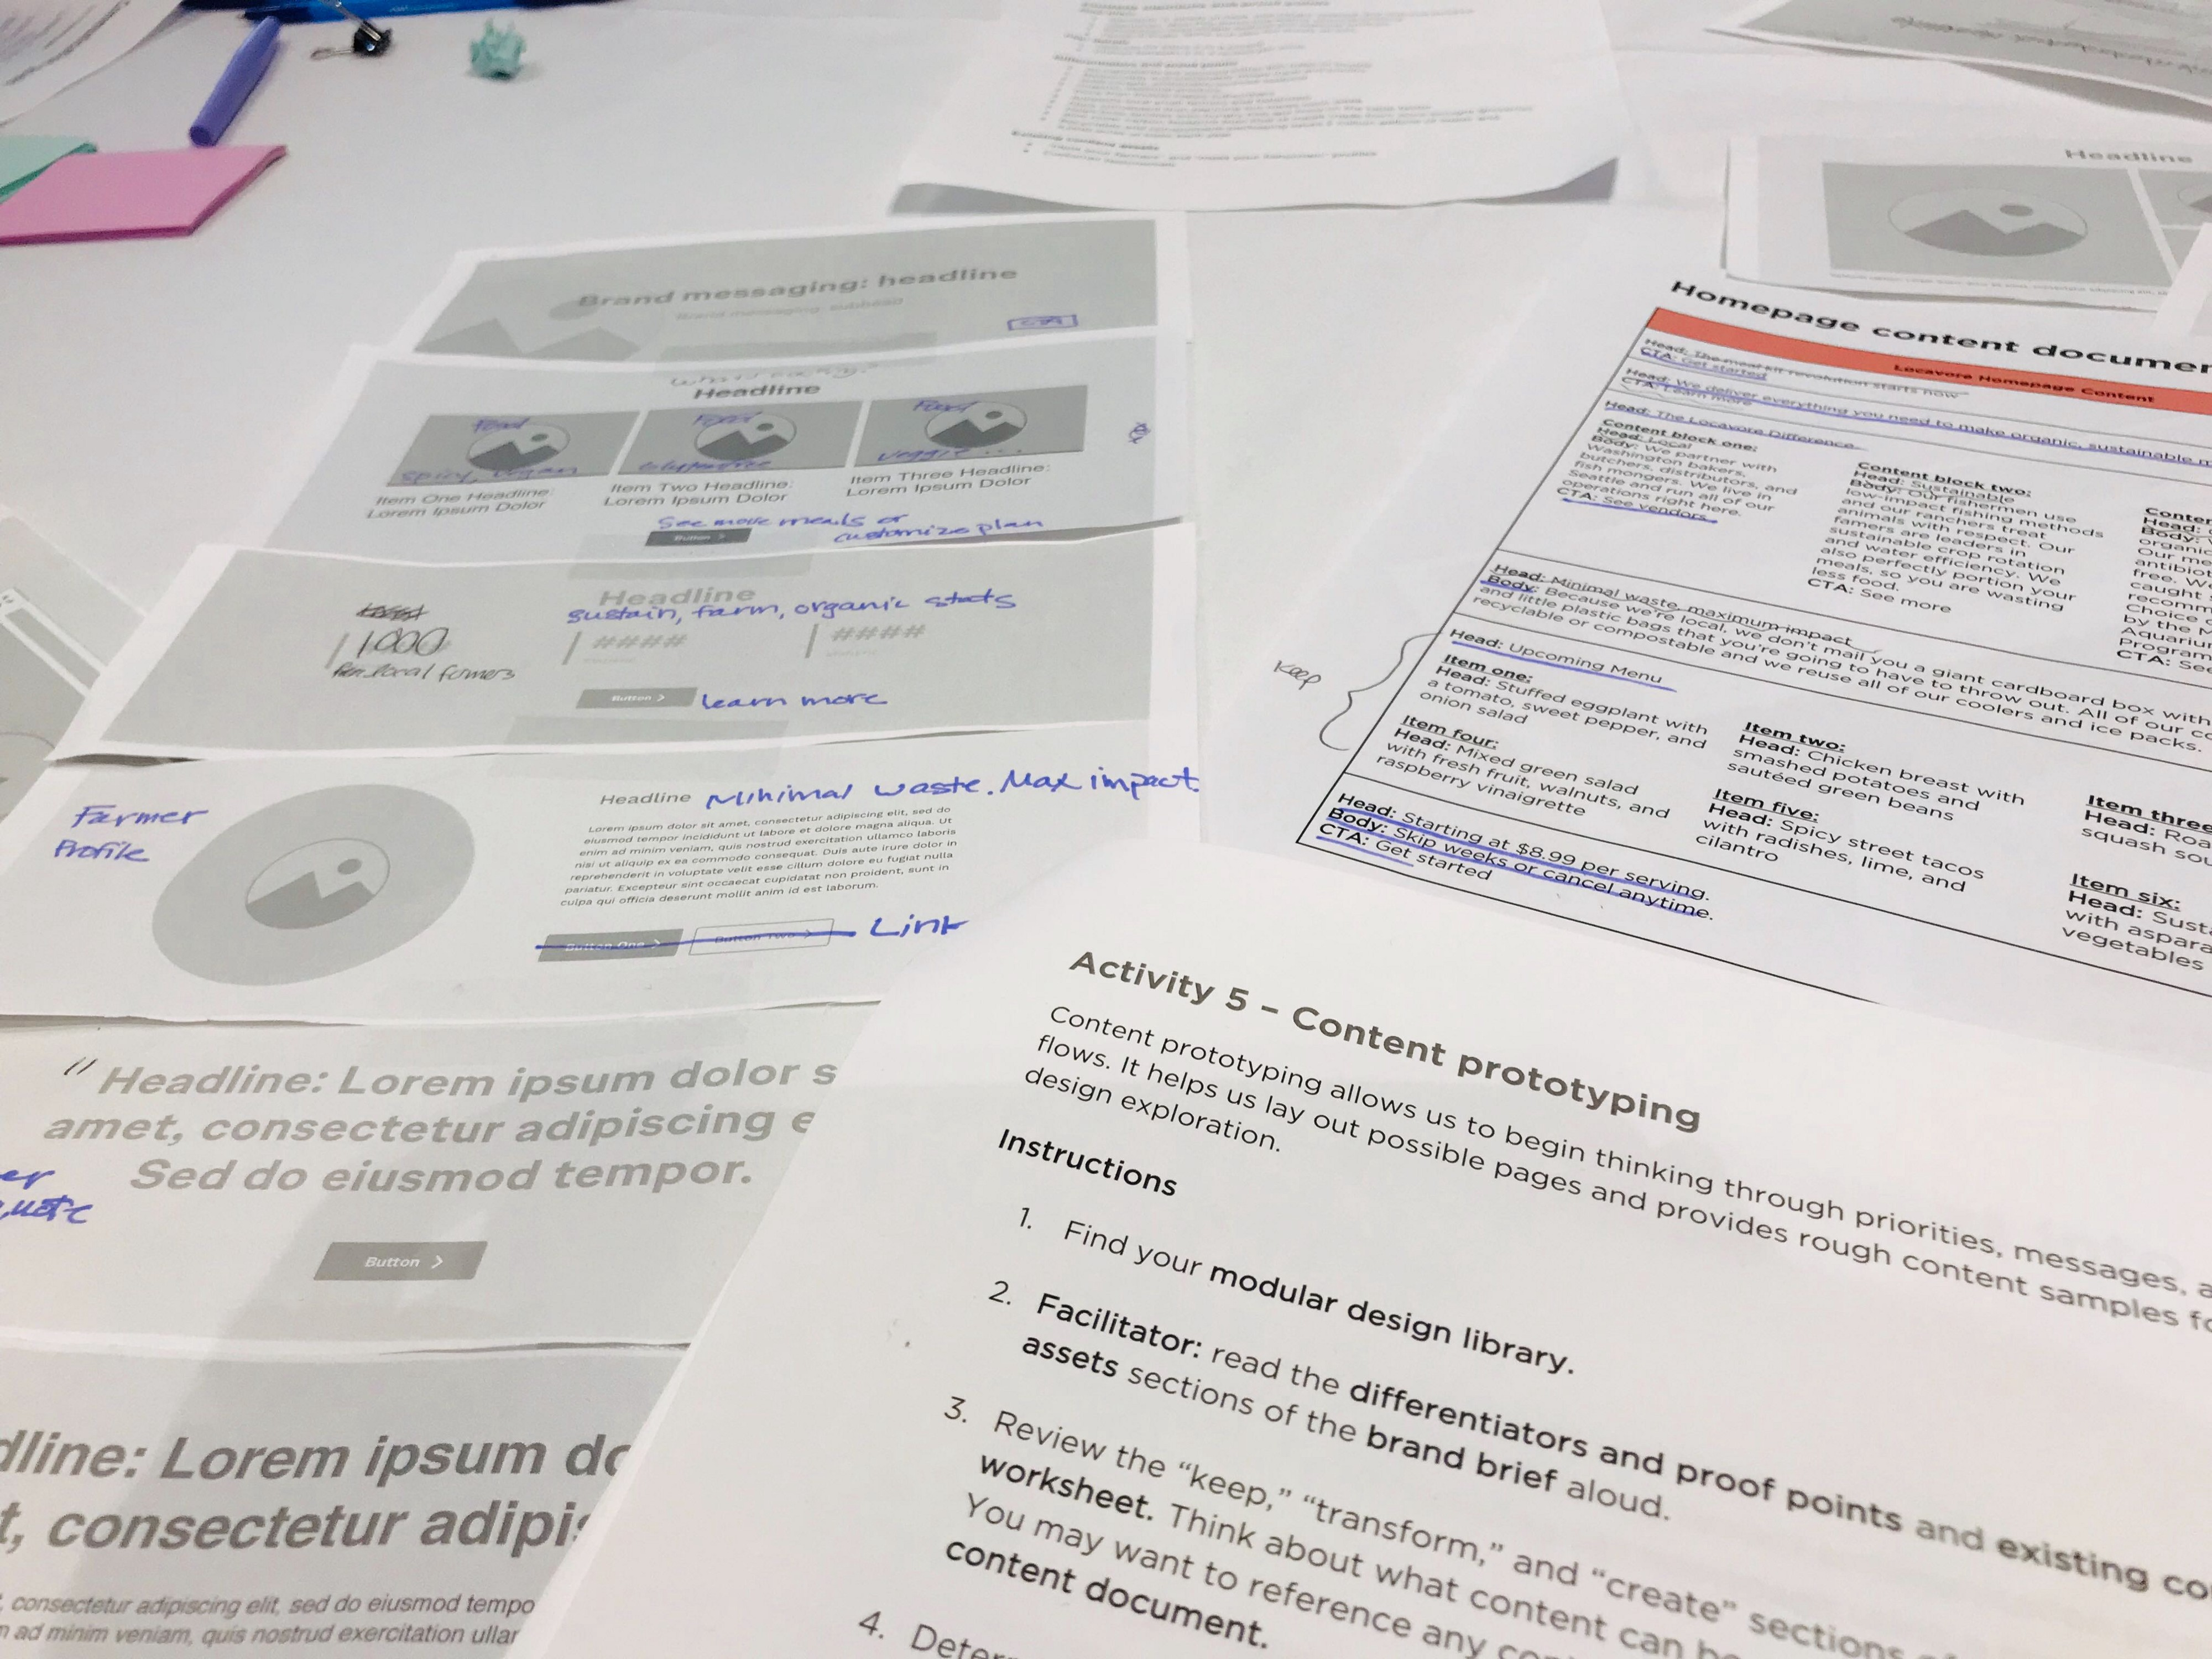 A close-up shot of several workshop documents including content prototyping instructions and a website paper prototype